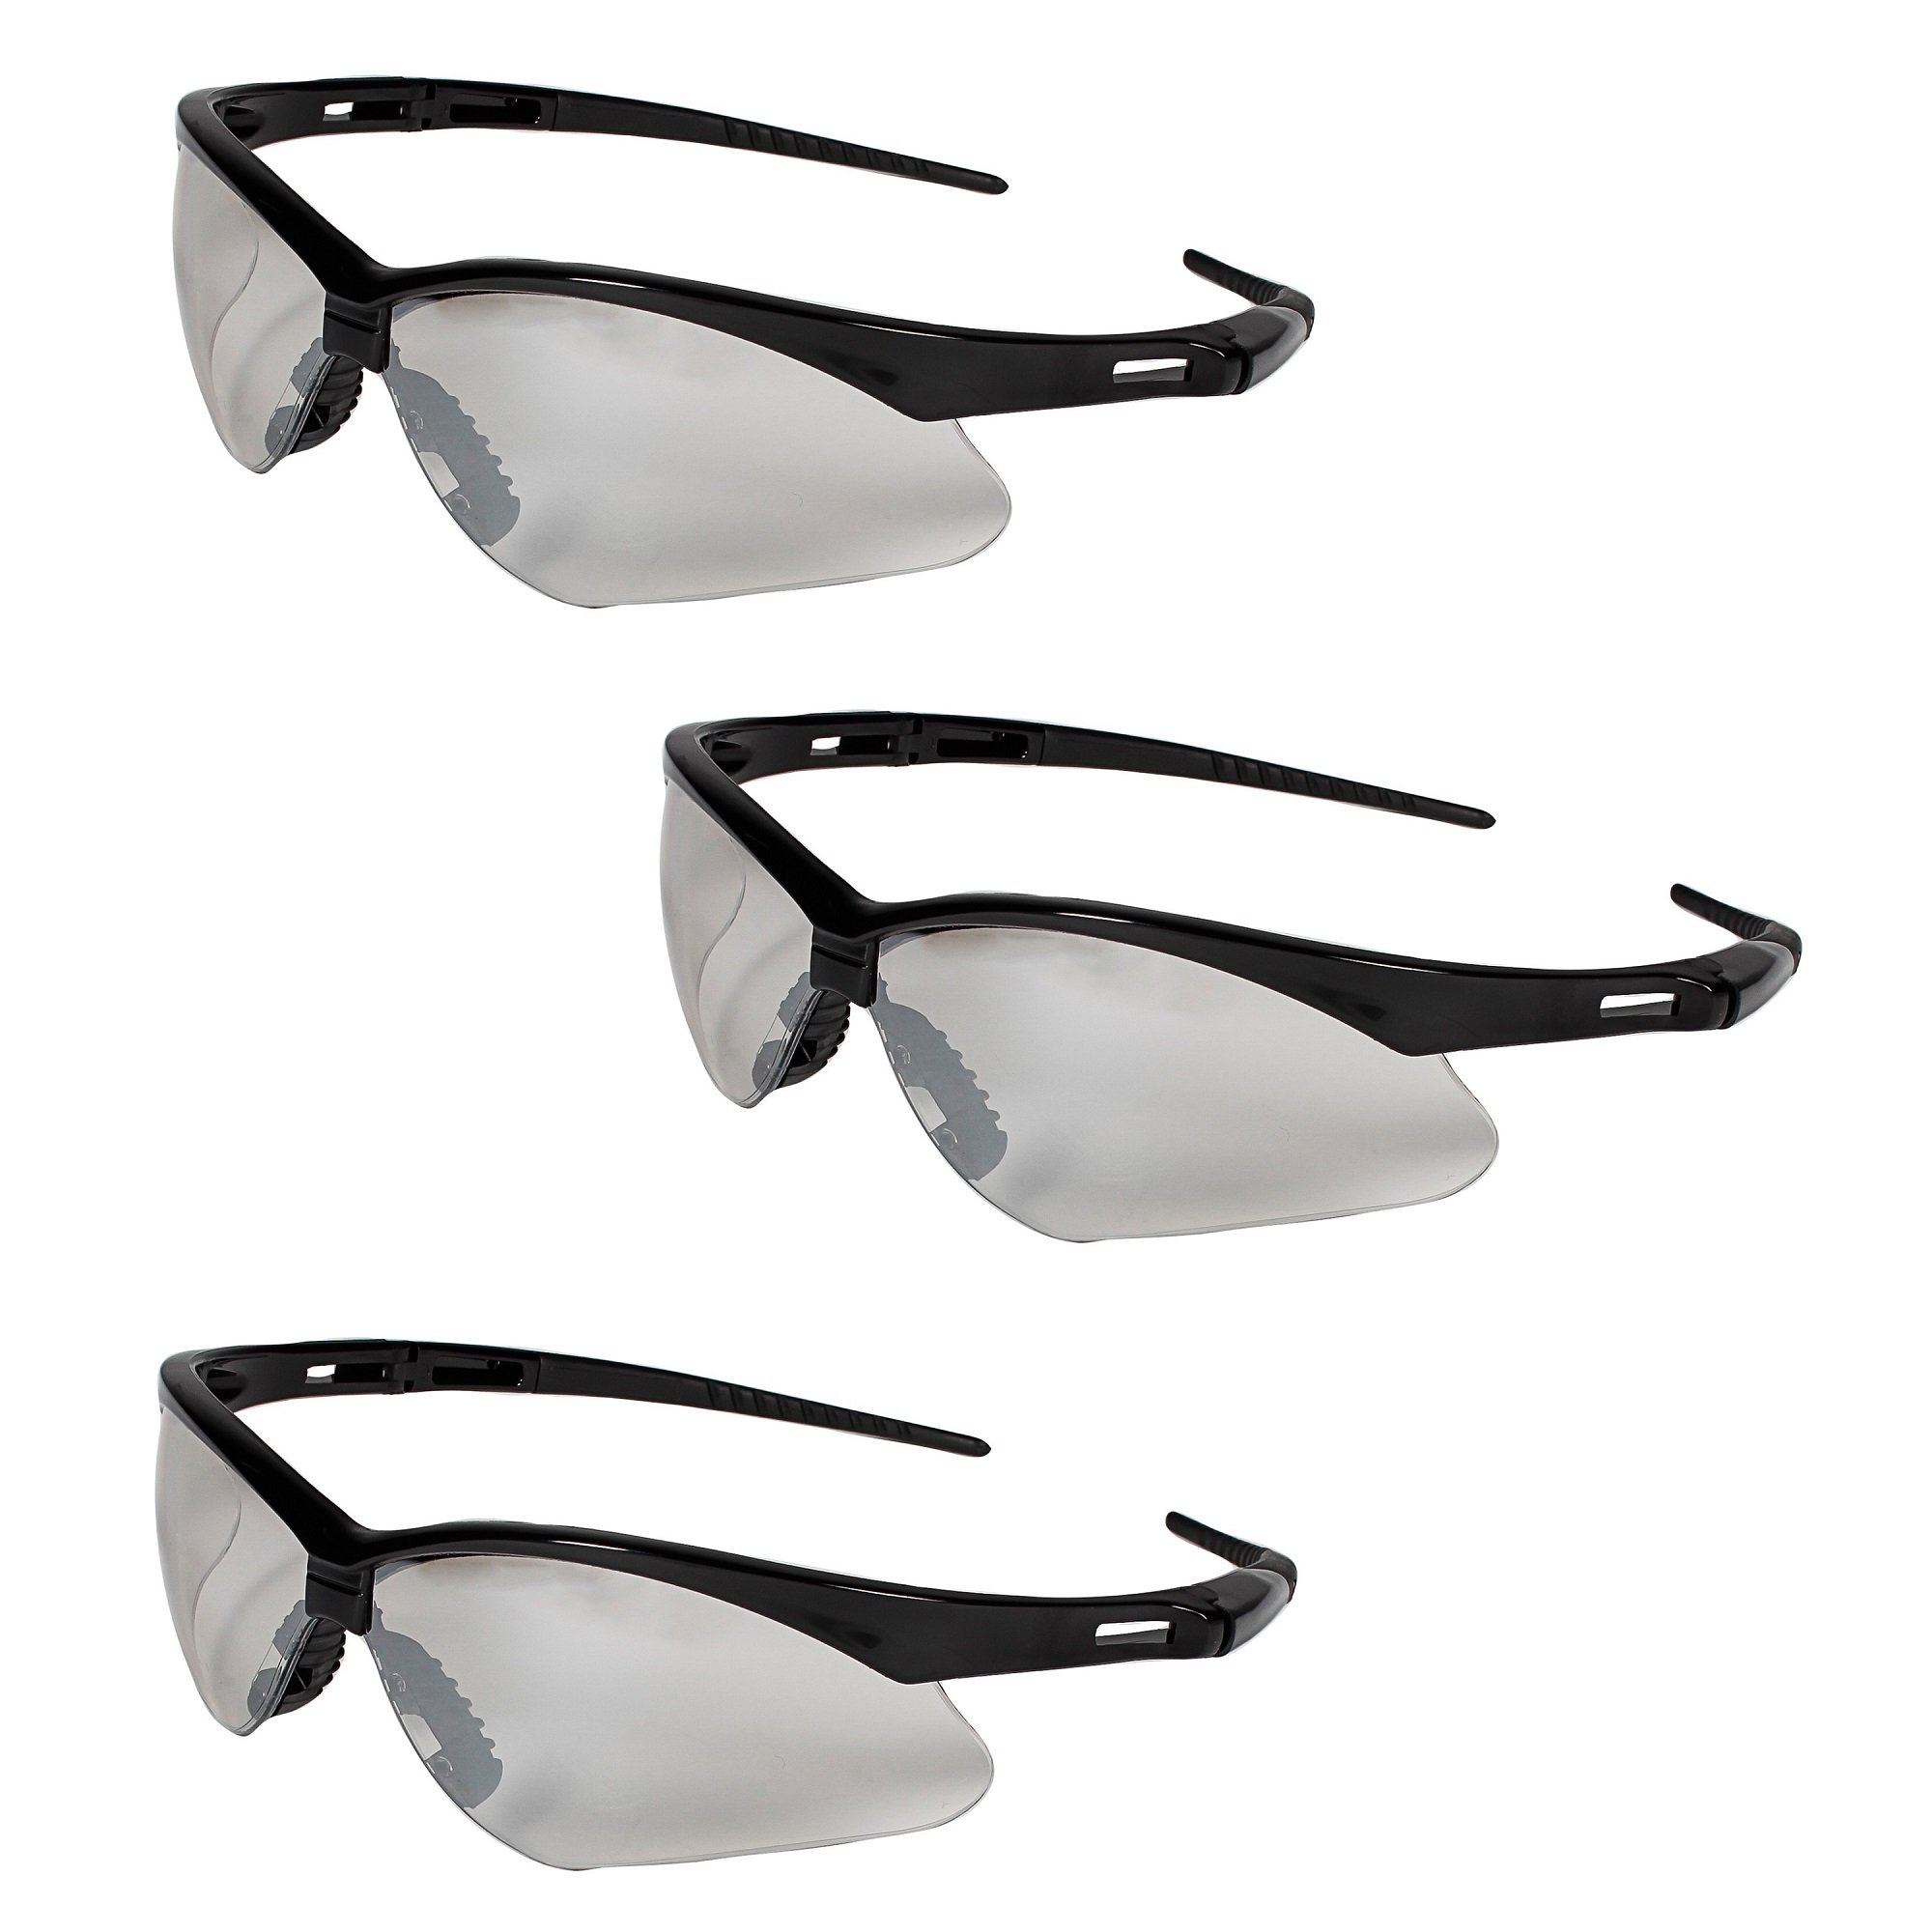 Jackson Safety V30 25685 Nemesis Safety Glasses 3000357 (3 Pair) (Black Frame with Indoor/Outdoor Lens)